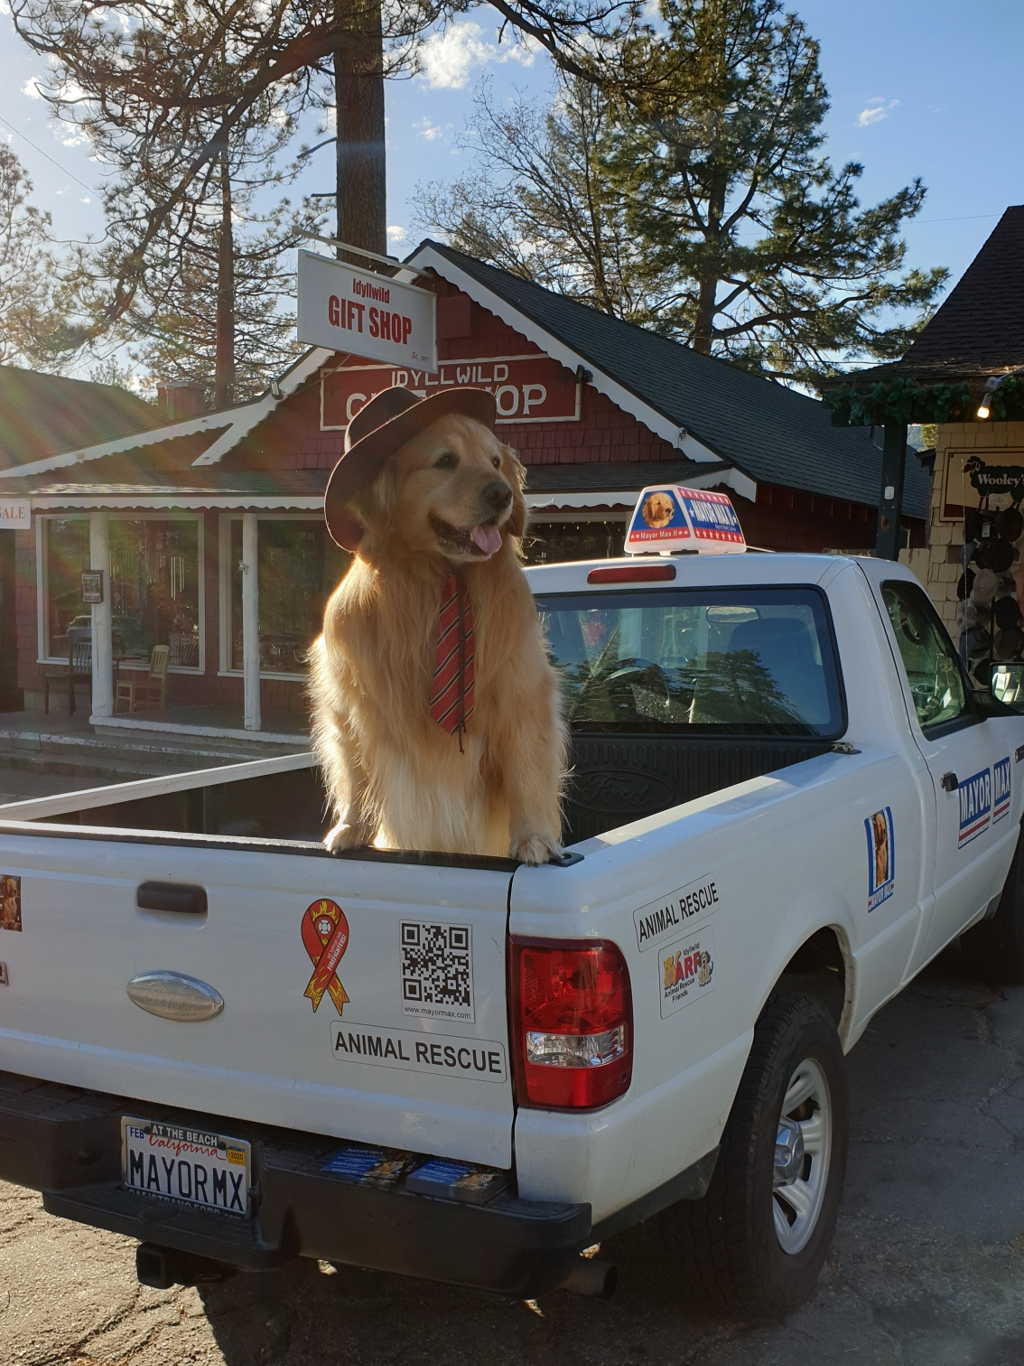 Van Julian naar Idyllwild - Pacific Crest Trail week 2 - Mayor Max